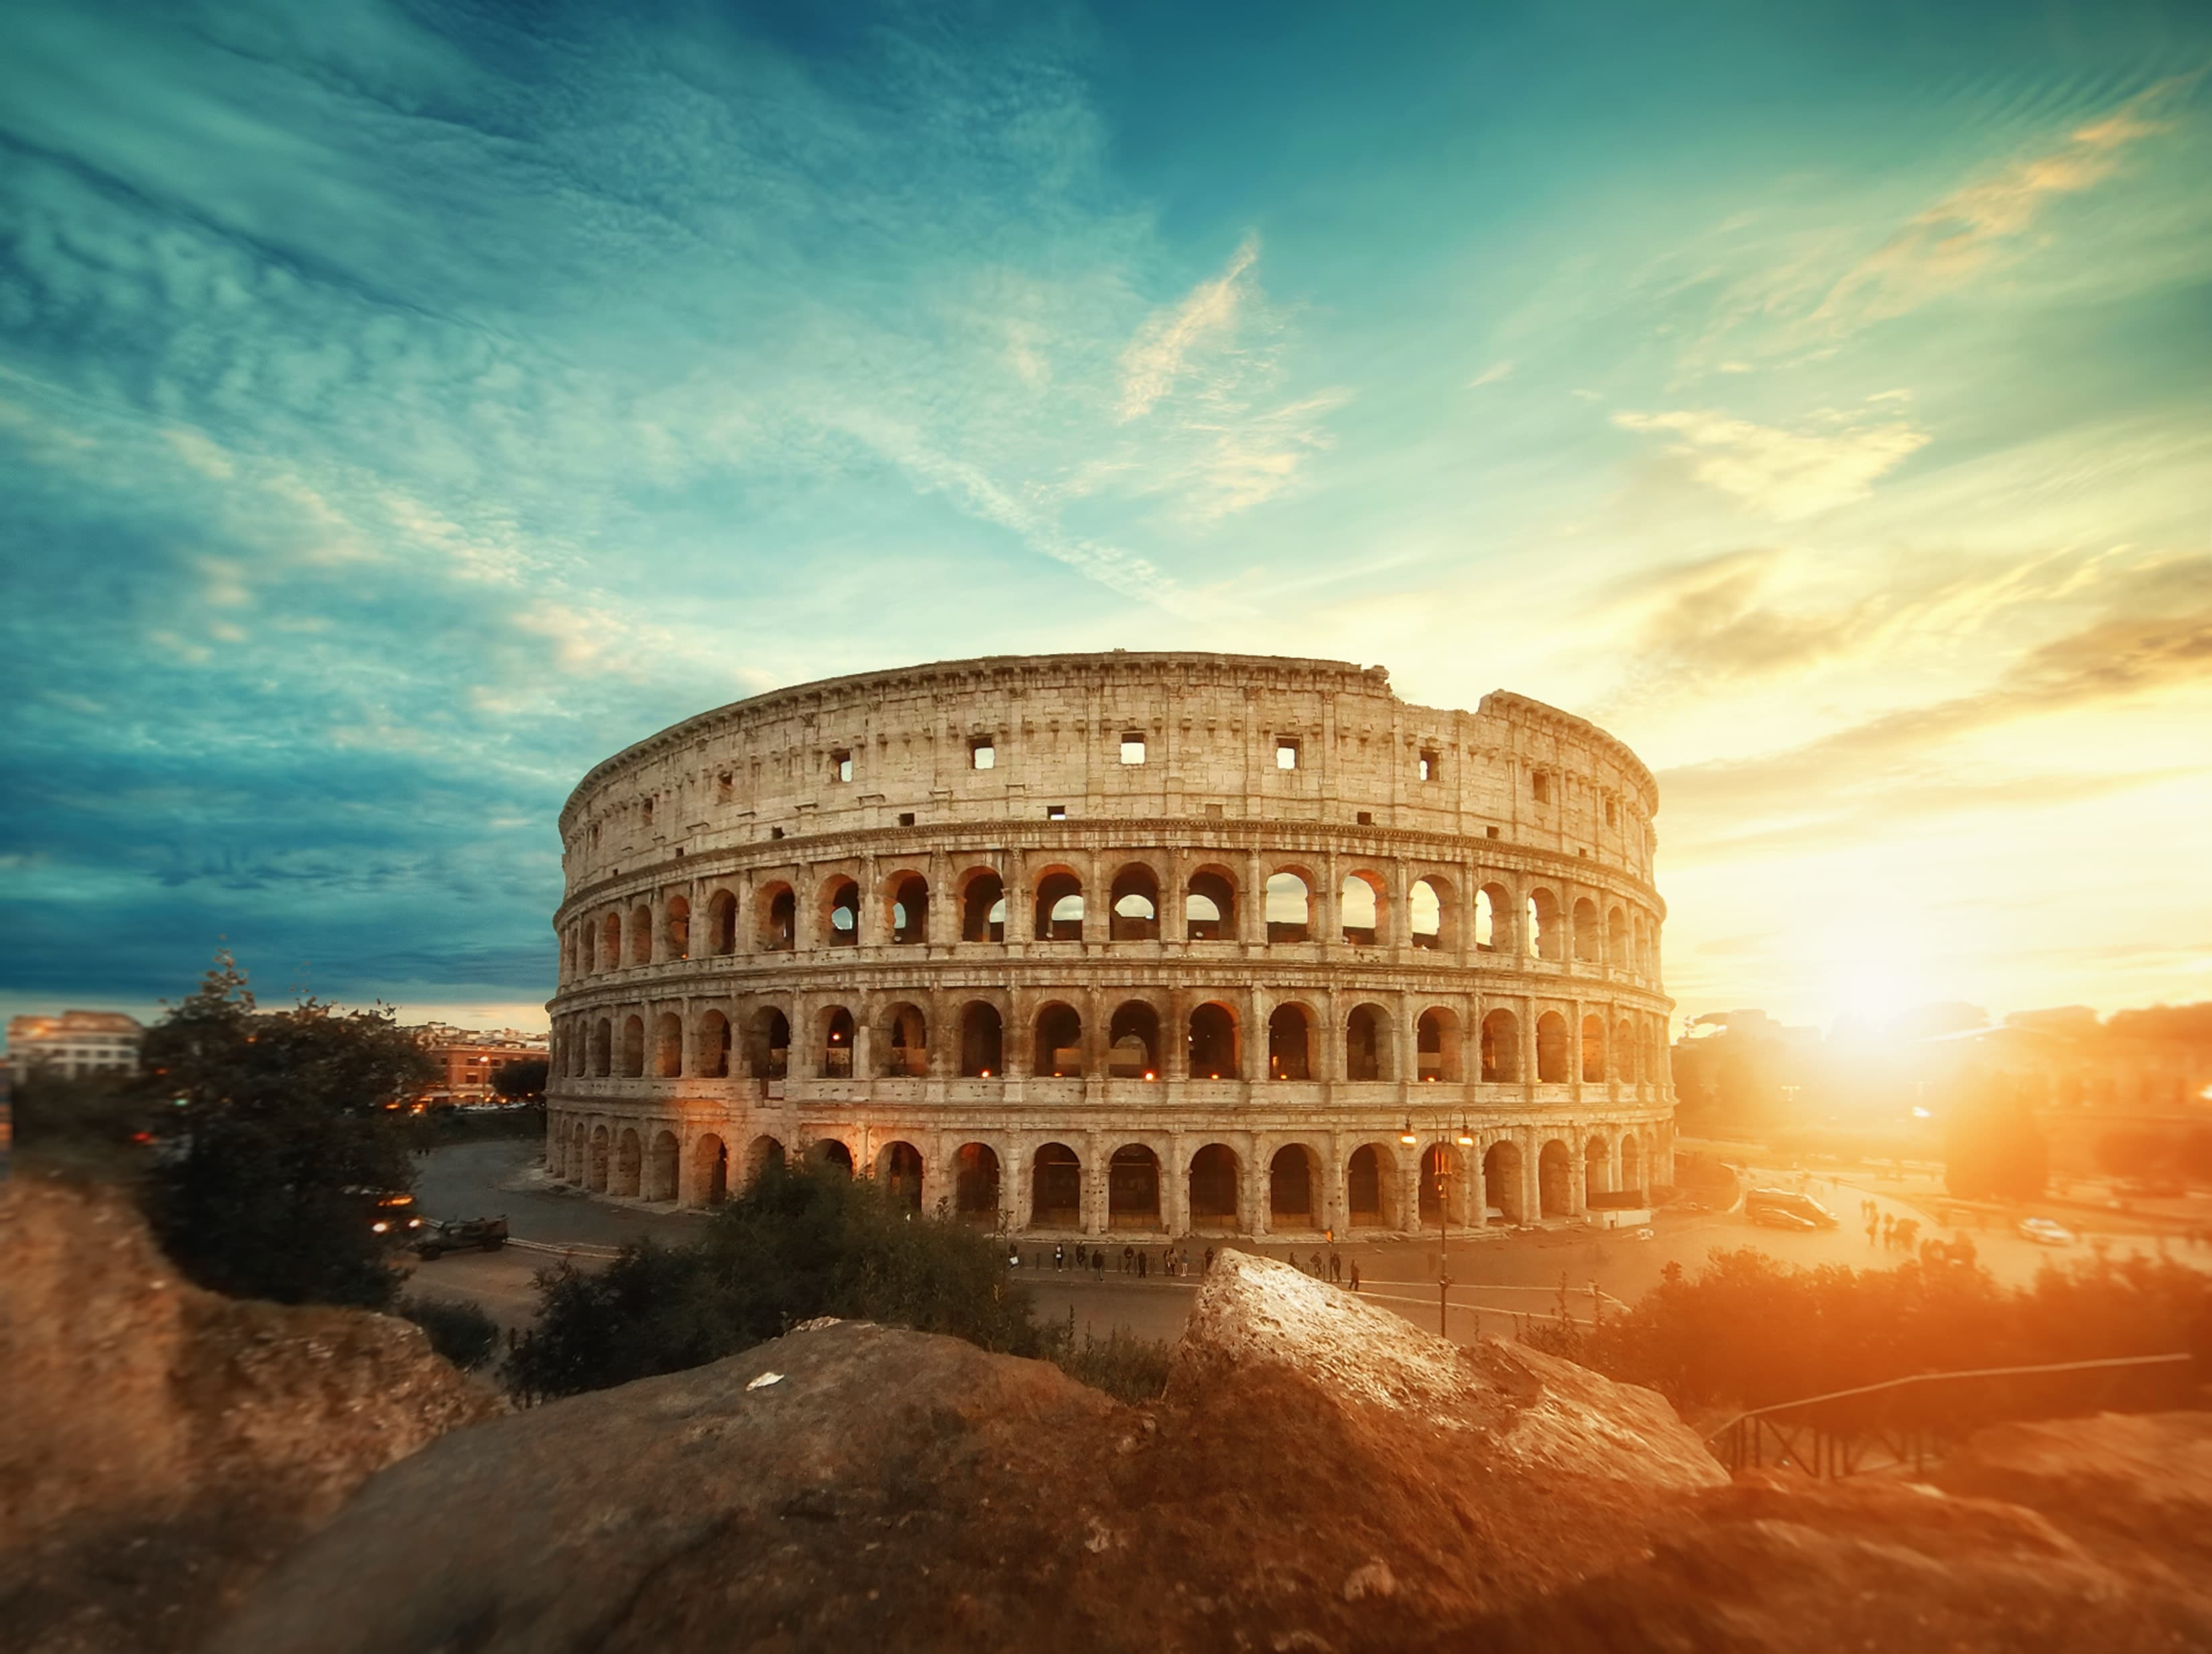 city break in Europe-architecture-Rome-AlignThoughts